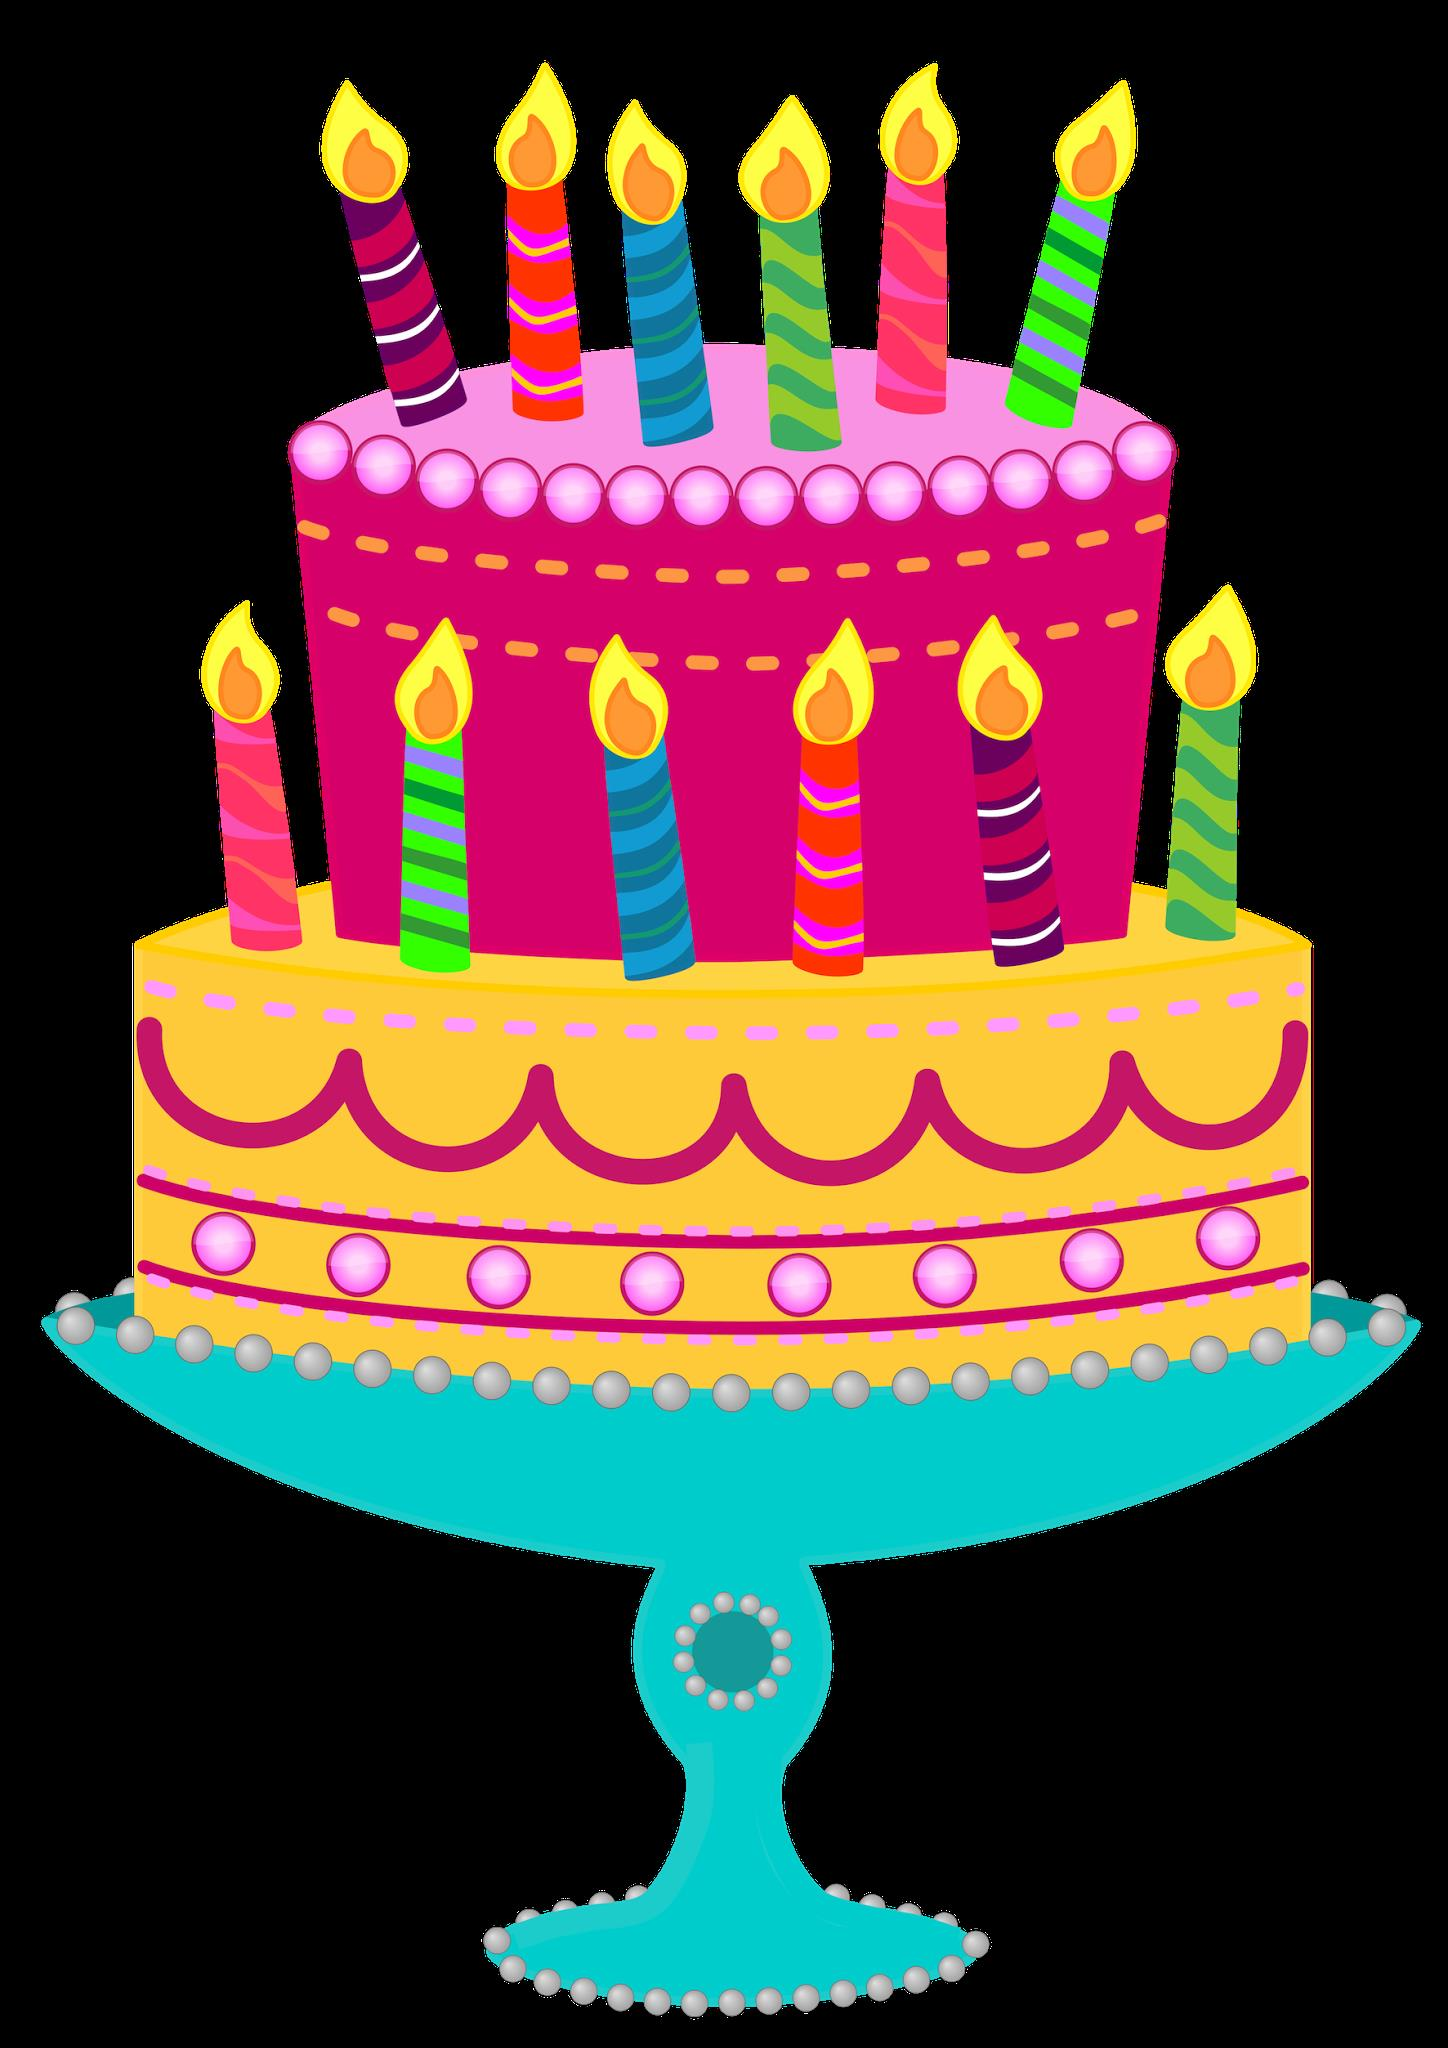 birthday clipart images free ; birthday-cake-clip-art-51